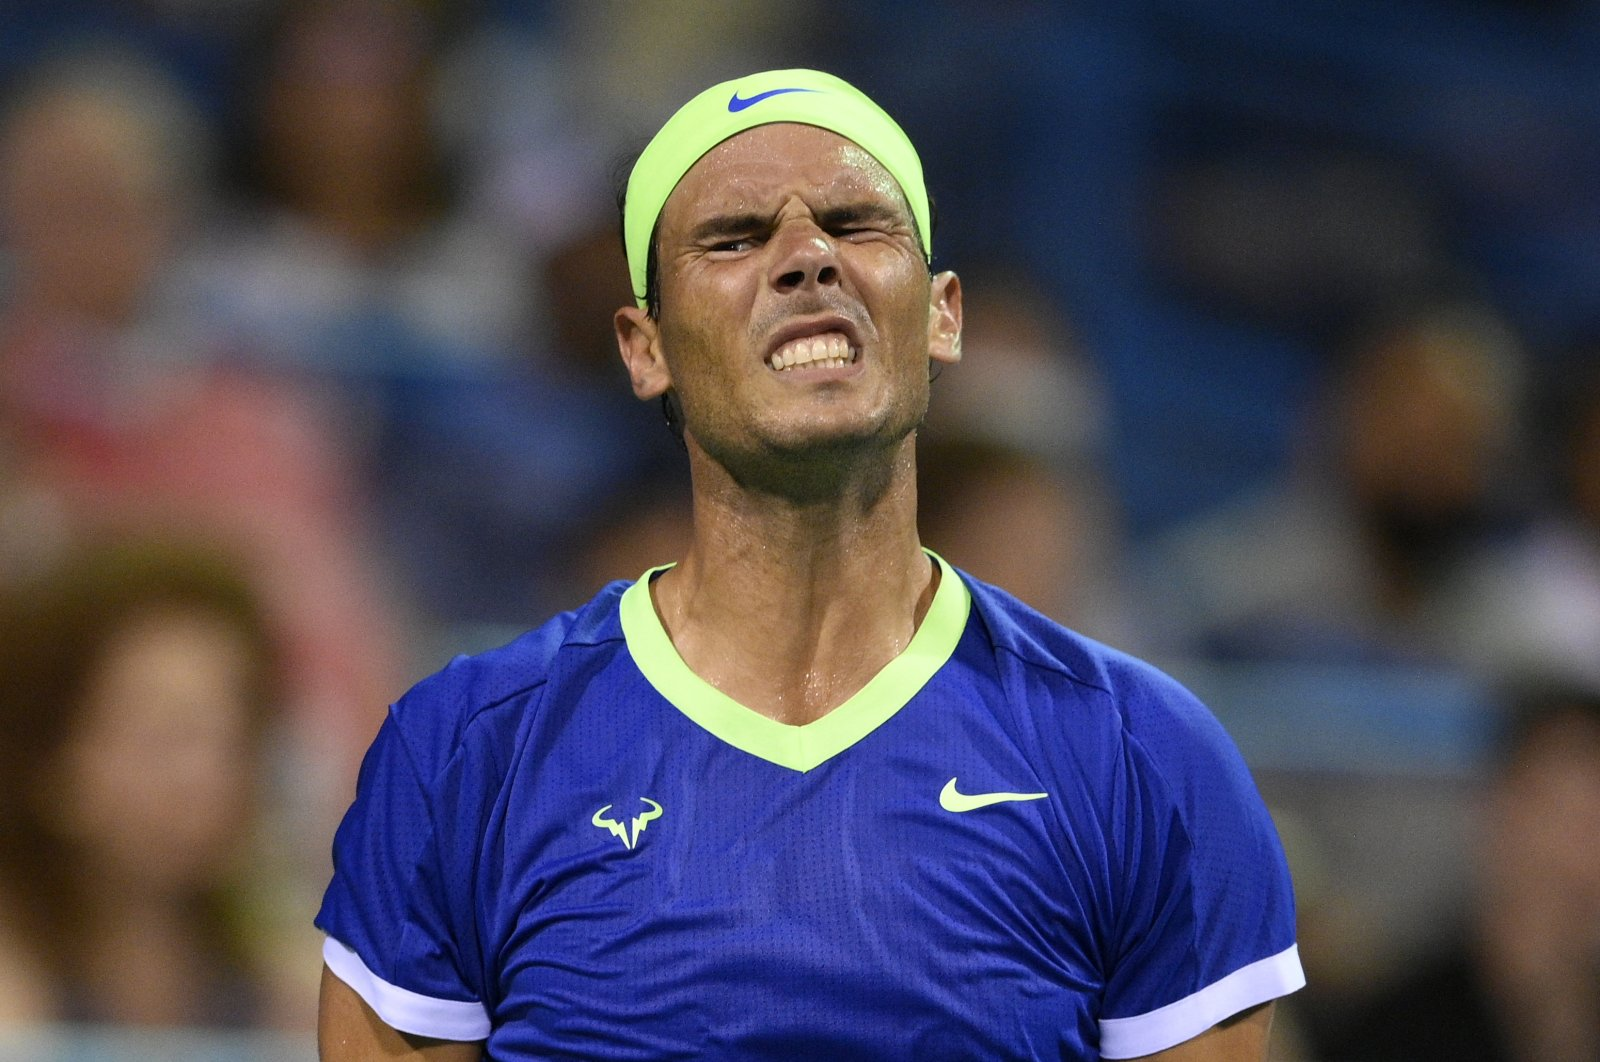 Spain's Rafael Nadal reacts during a match against South Africa's Lloyd Harrisat the Citi Open, in Washington, D.C., U.S.,Aug. 5, 2021